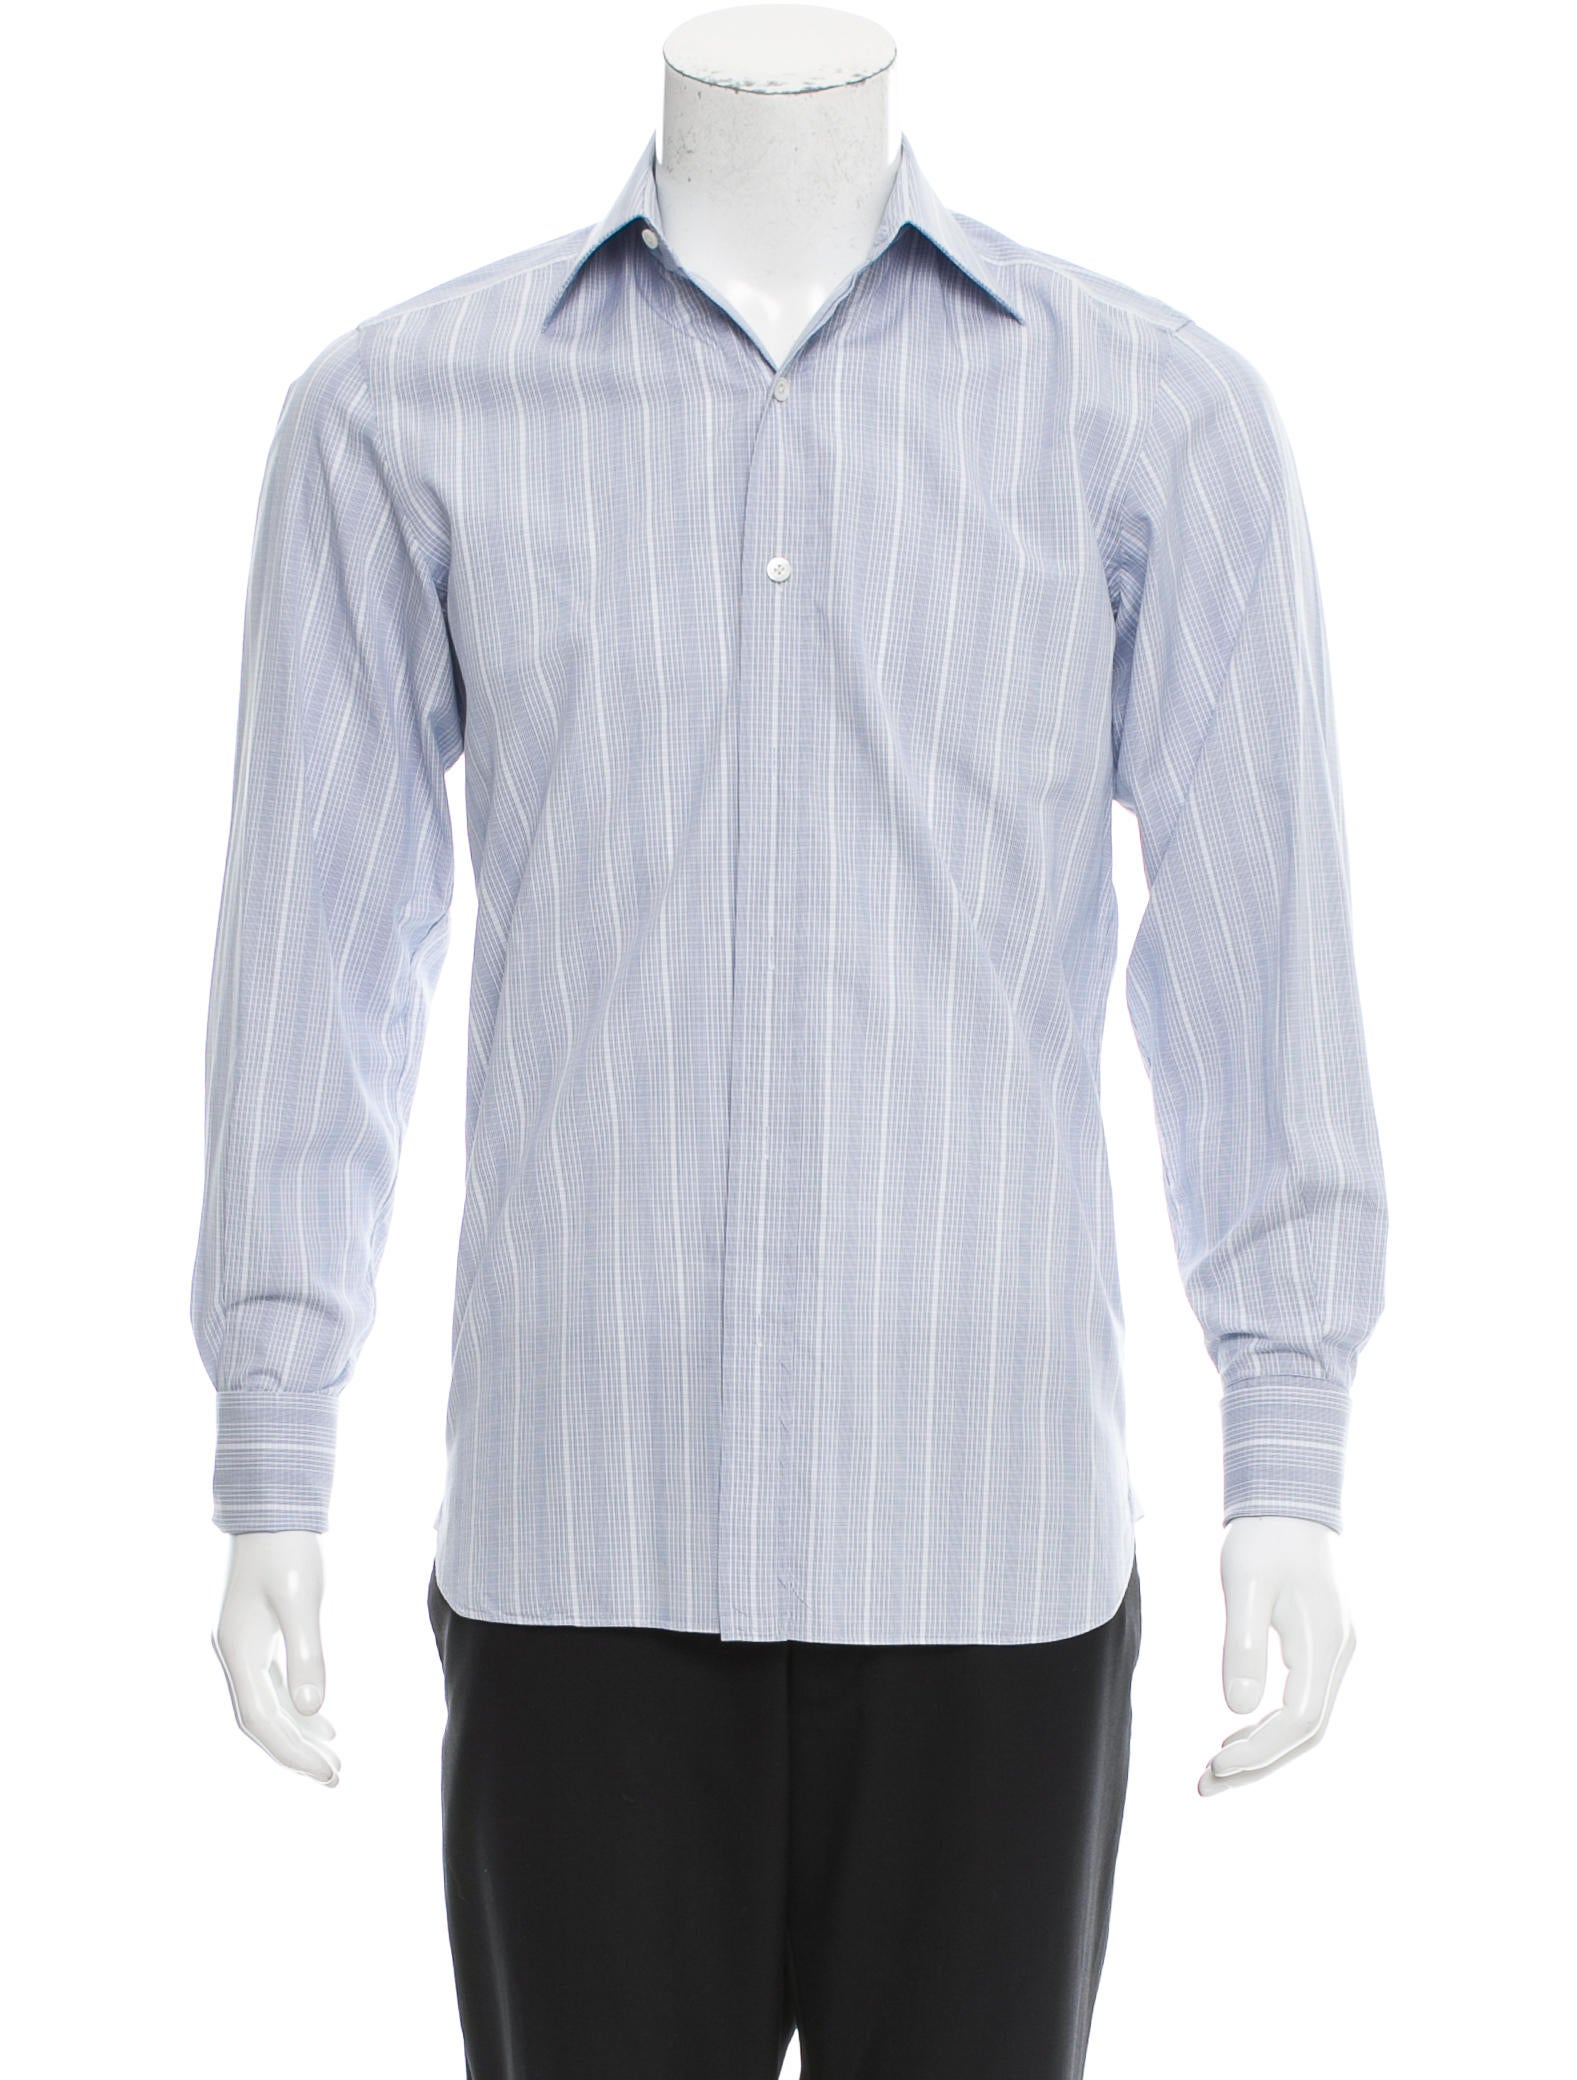 Tom ford french cuff button up shirt clothing tom36216 for What is a french cuff shirt